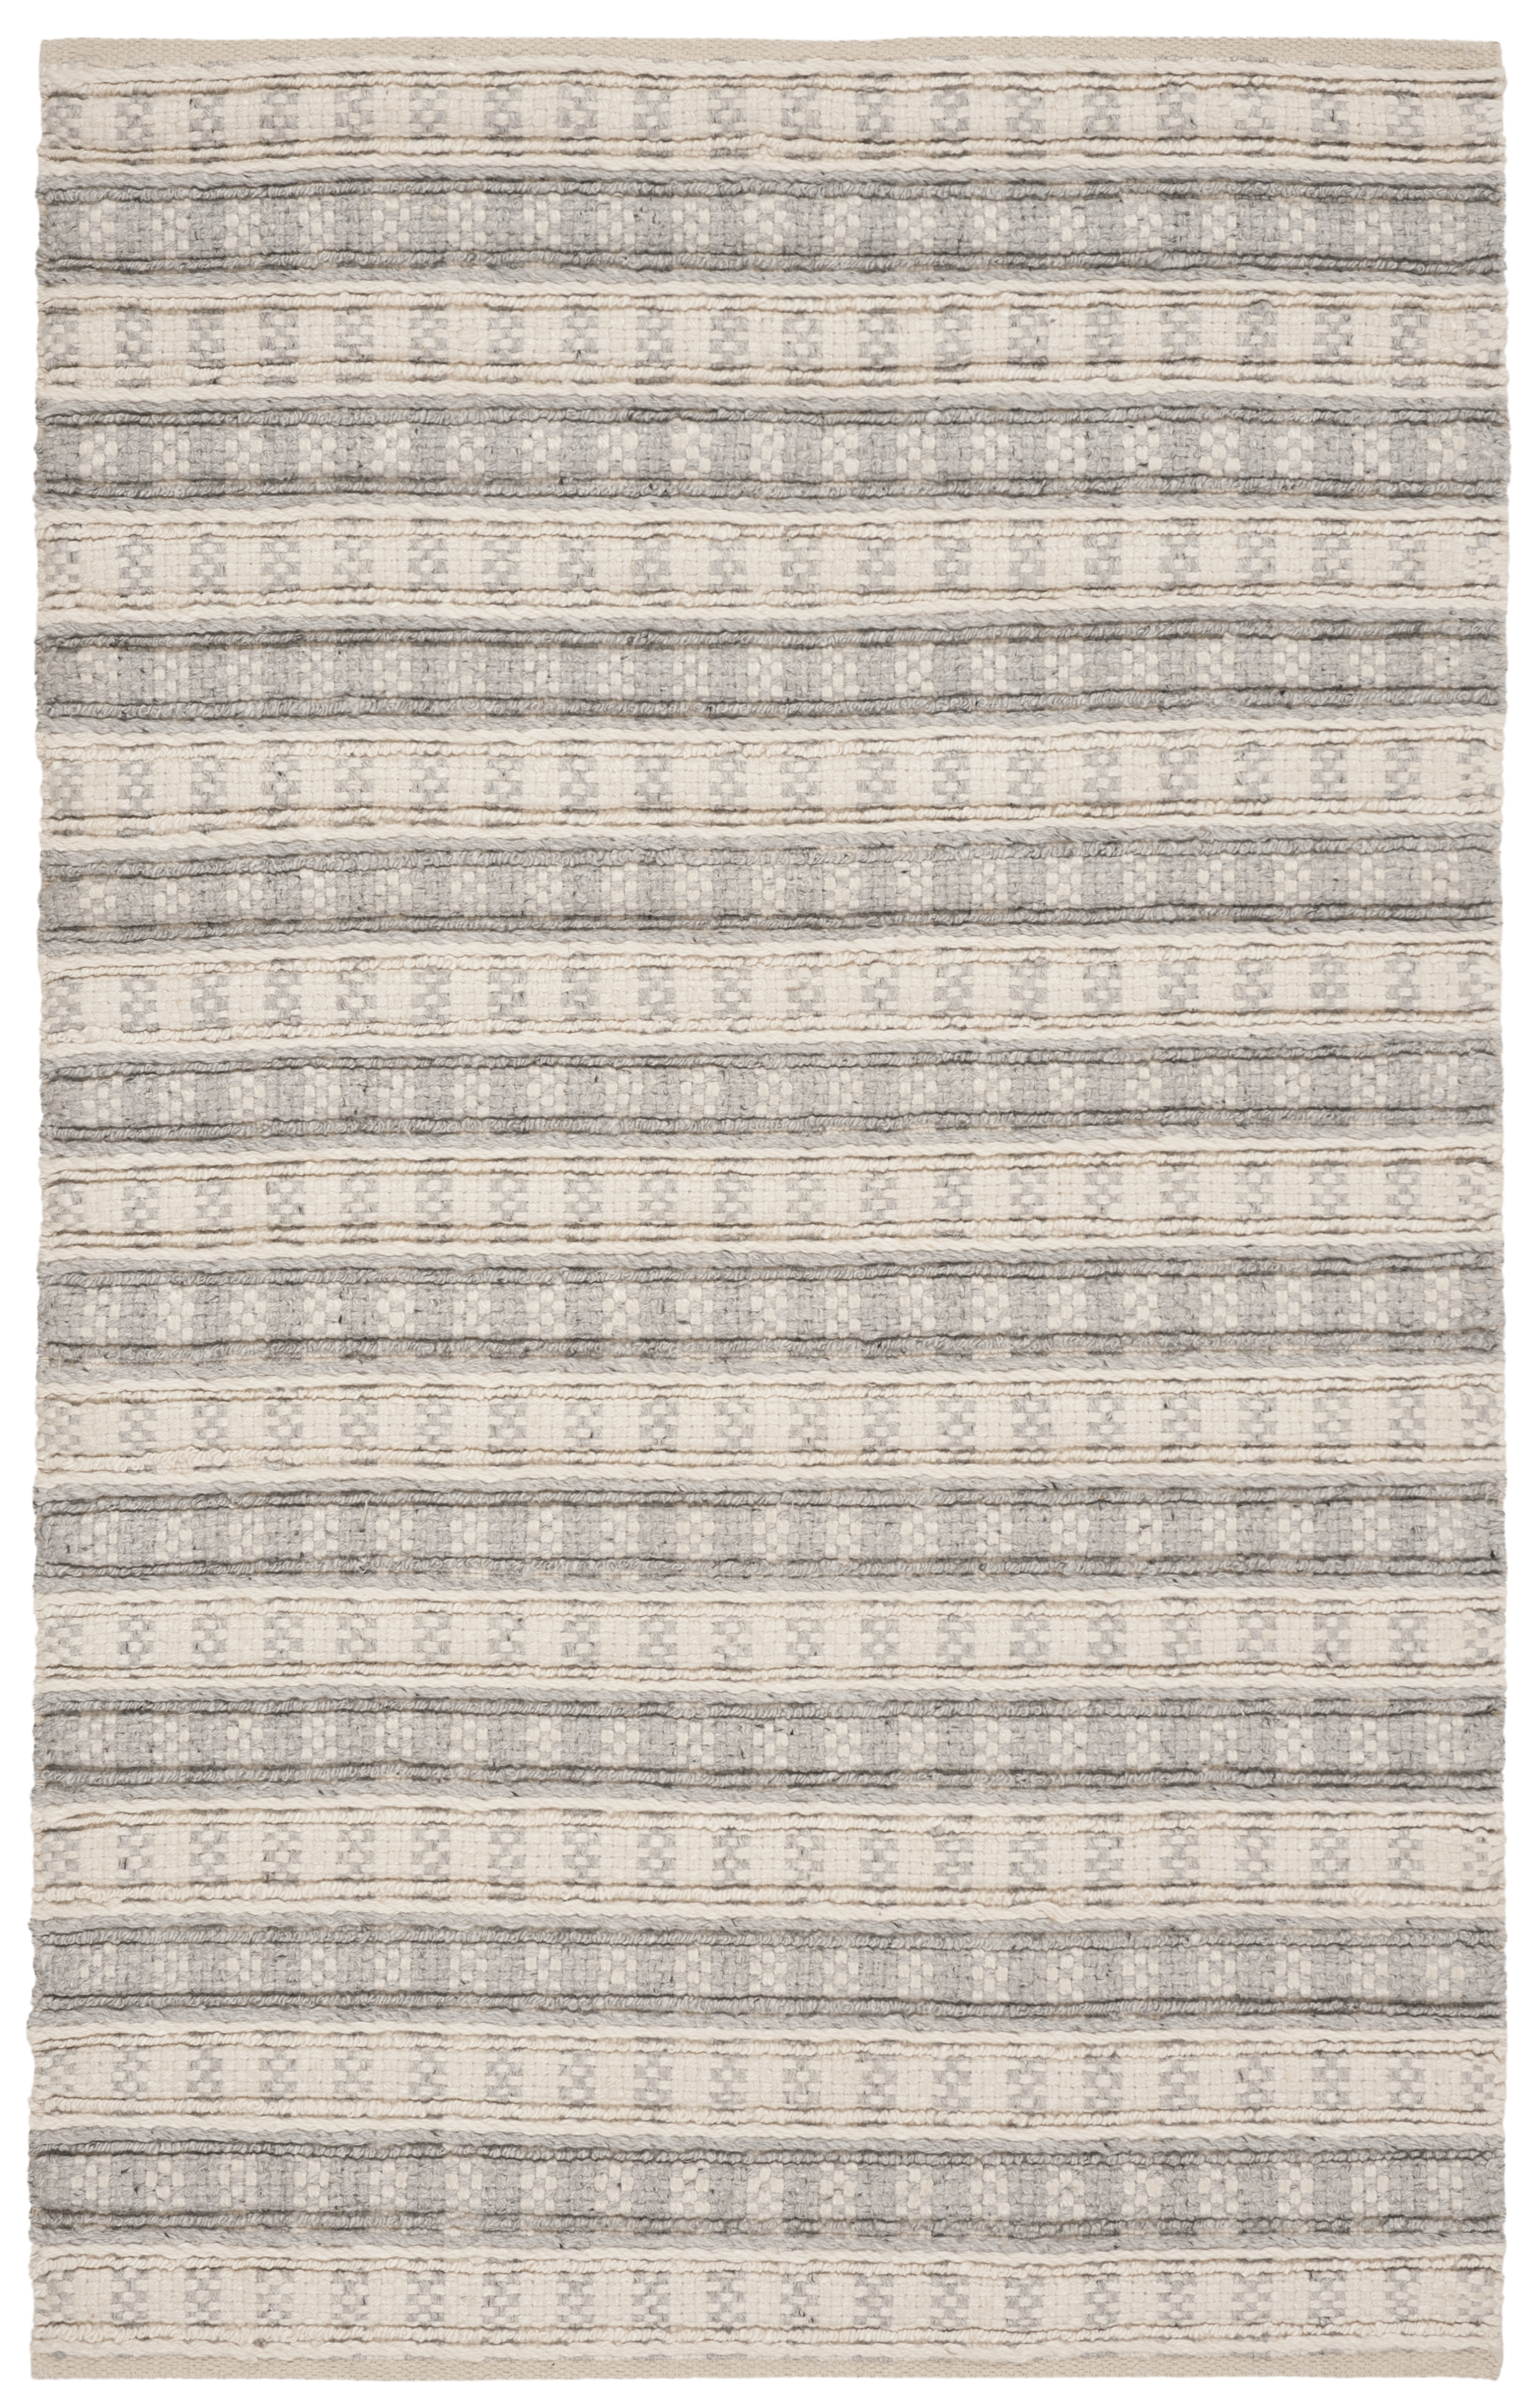 Safavieh Natura collection rug